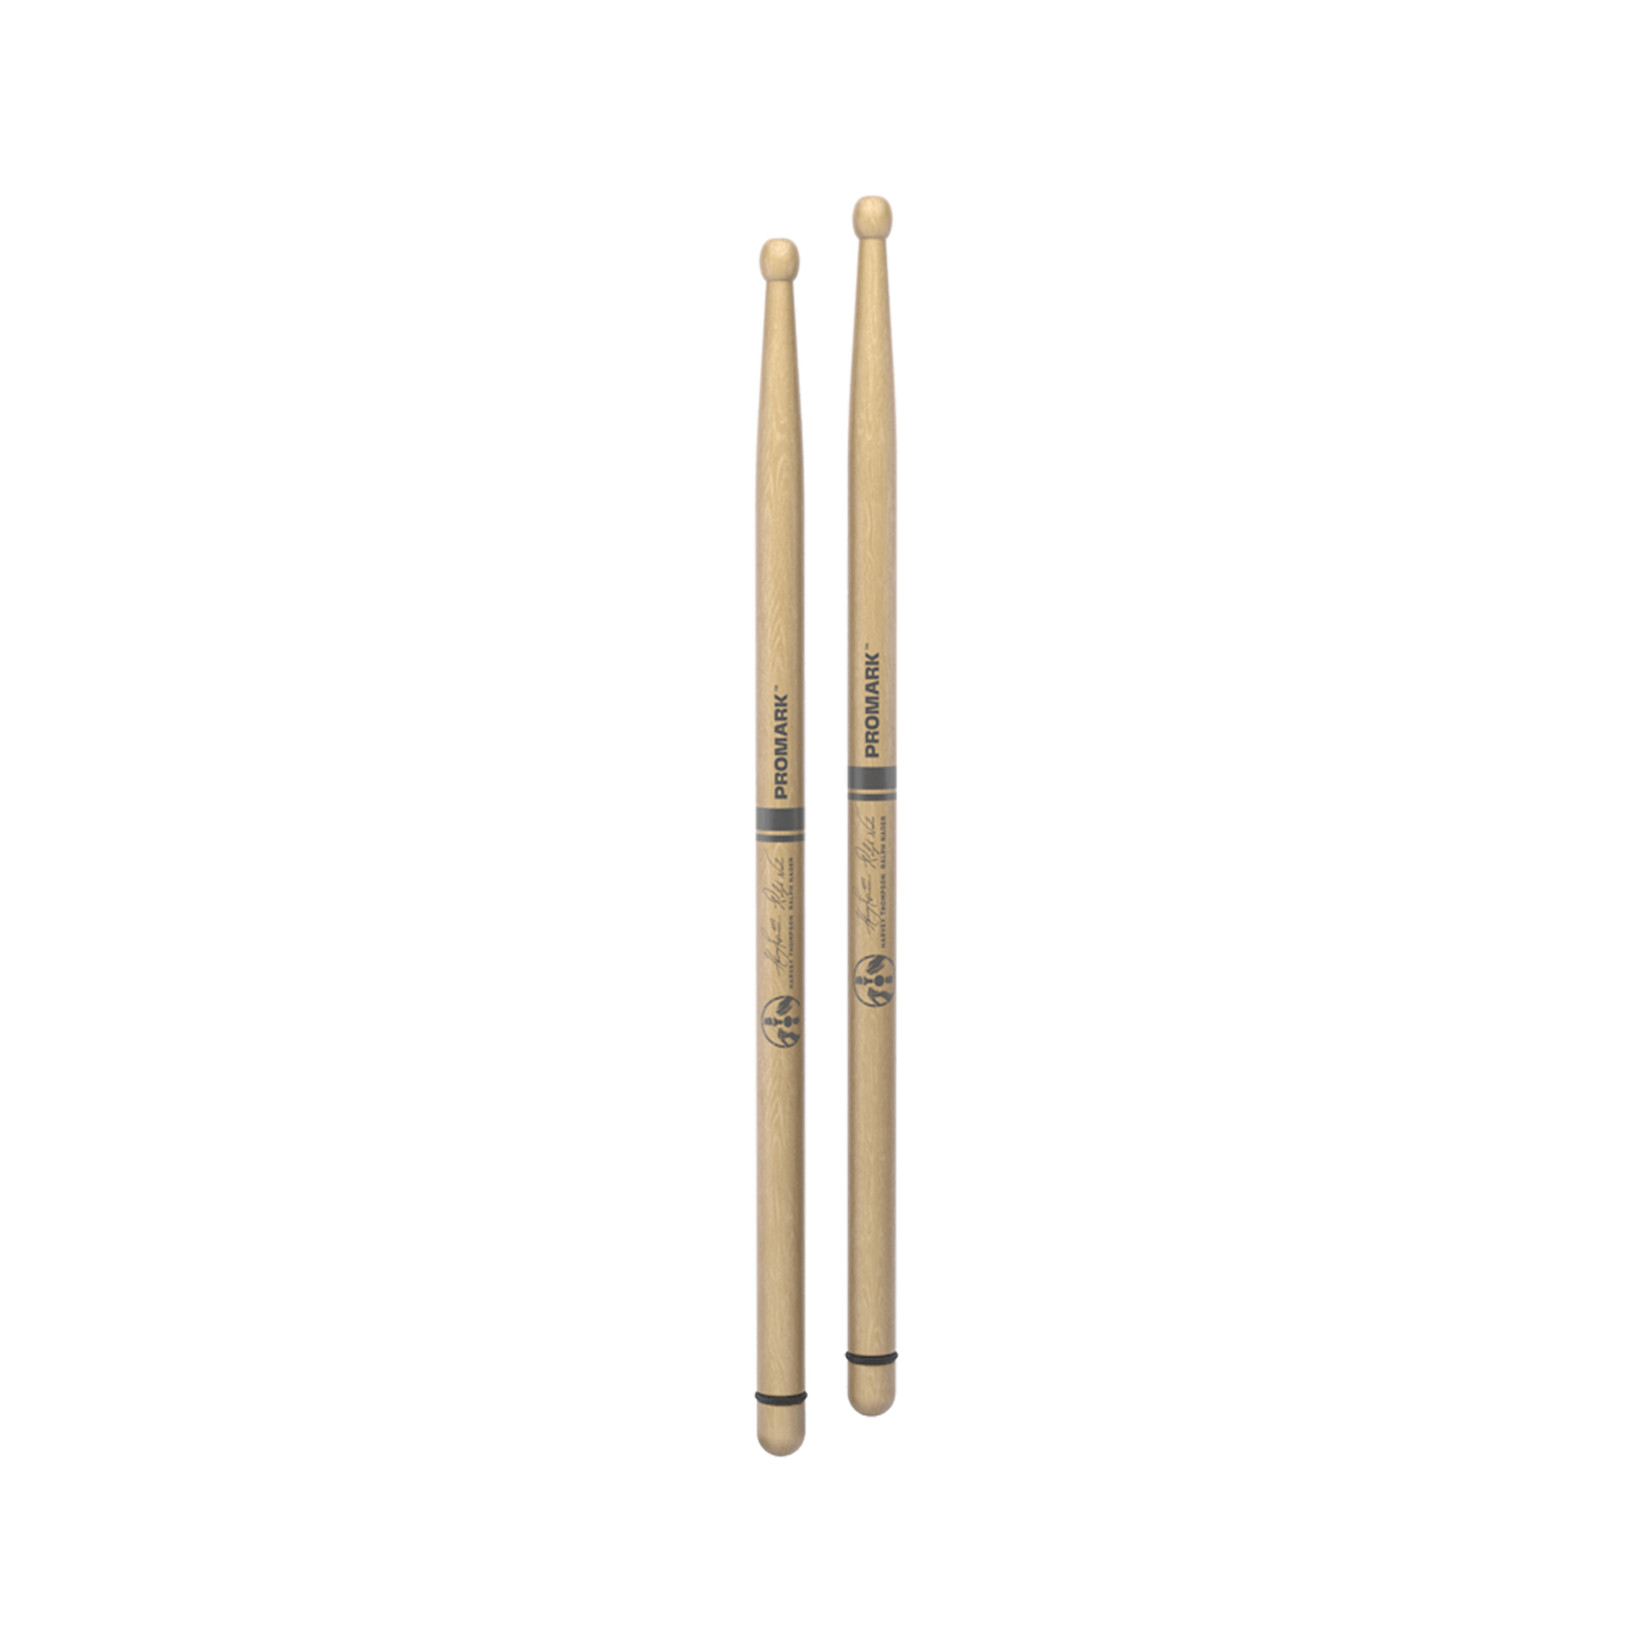 Promark Promark BYOS Marching Drumstick